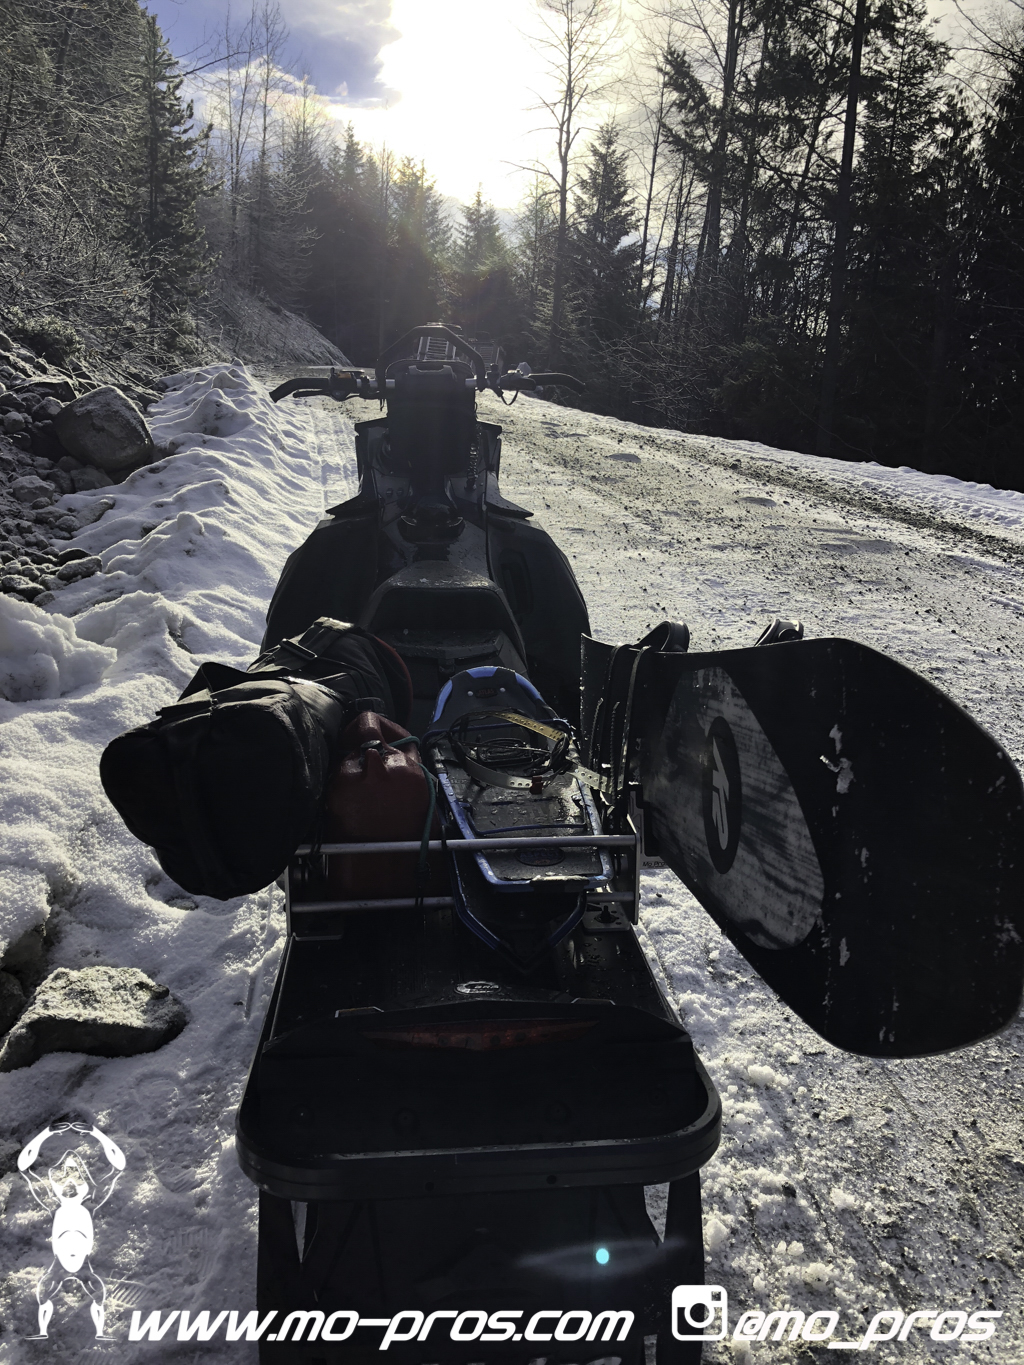 12_Tsaina Rack_Timbersled rack_Timbersled Rack_timbersled bag_snowmobile bag_Snowmobile_Snowboarding_Snowboard rack_snowboard_Snowbike_Ski_Rack_LinQ Snowboard Ski_Gun Rack_Gear_gas Rack_Cheetah Facto.jpg